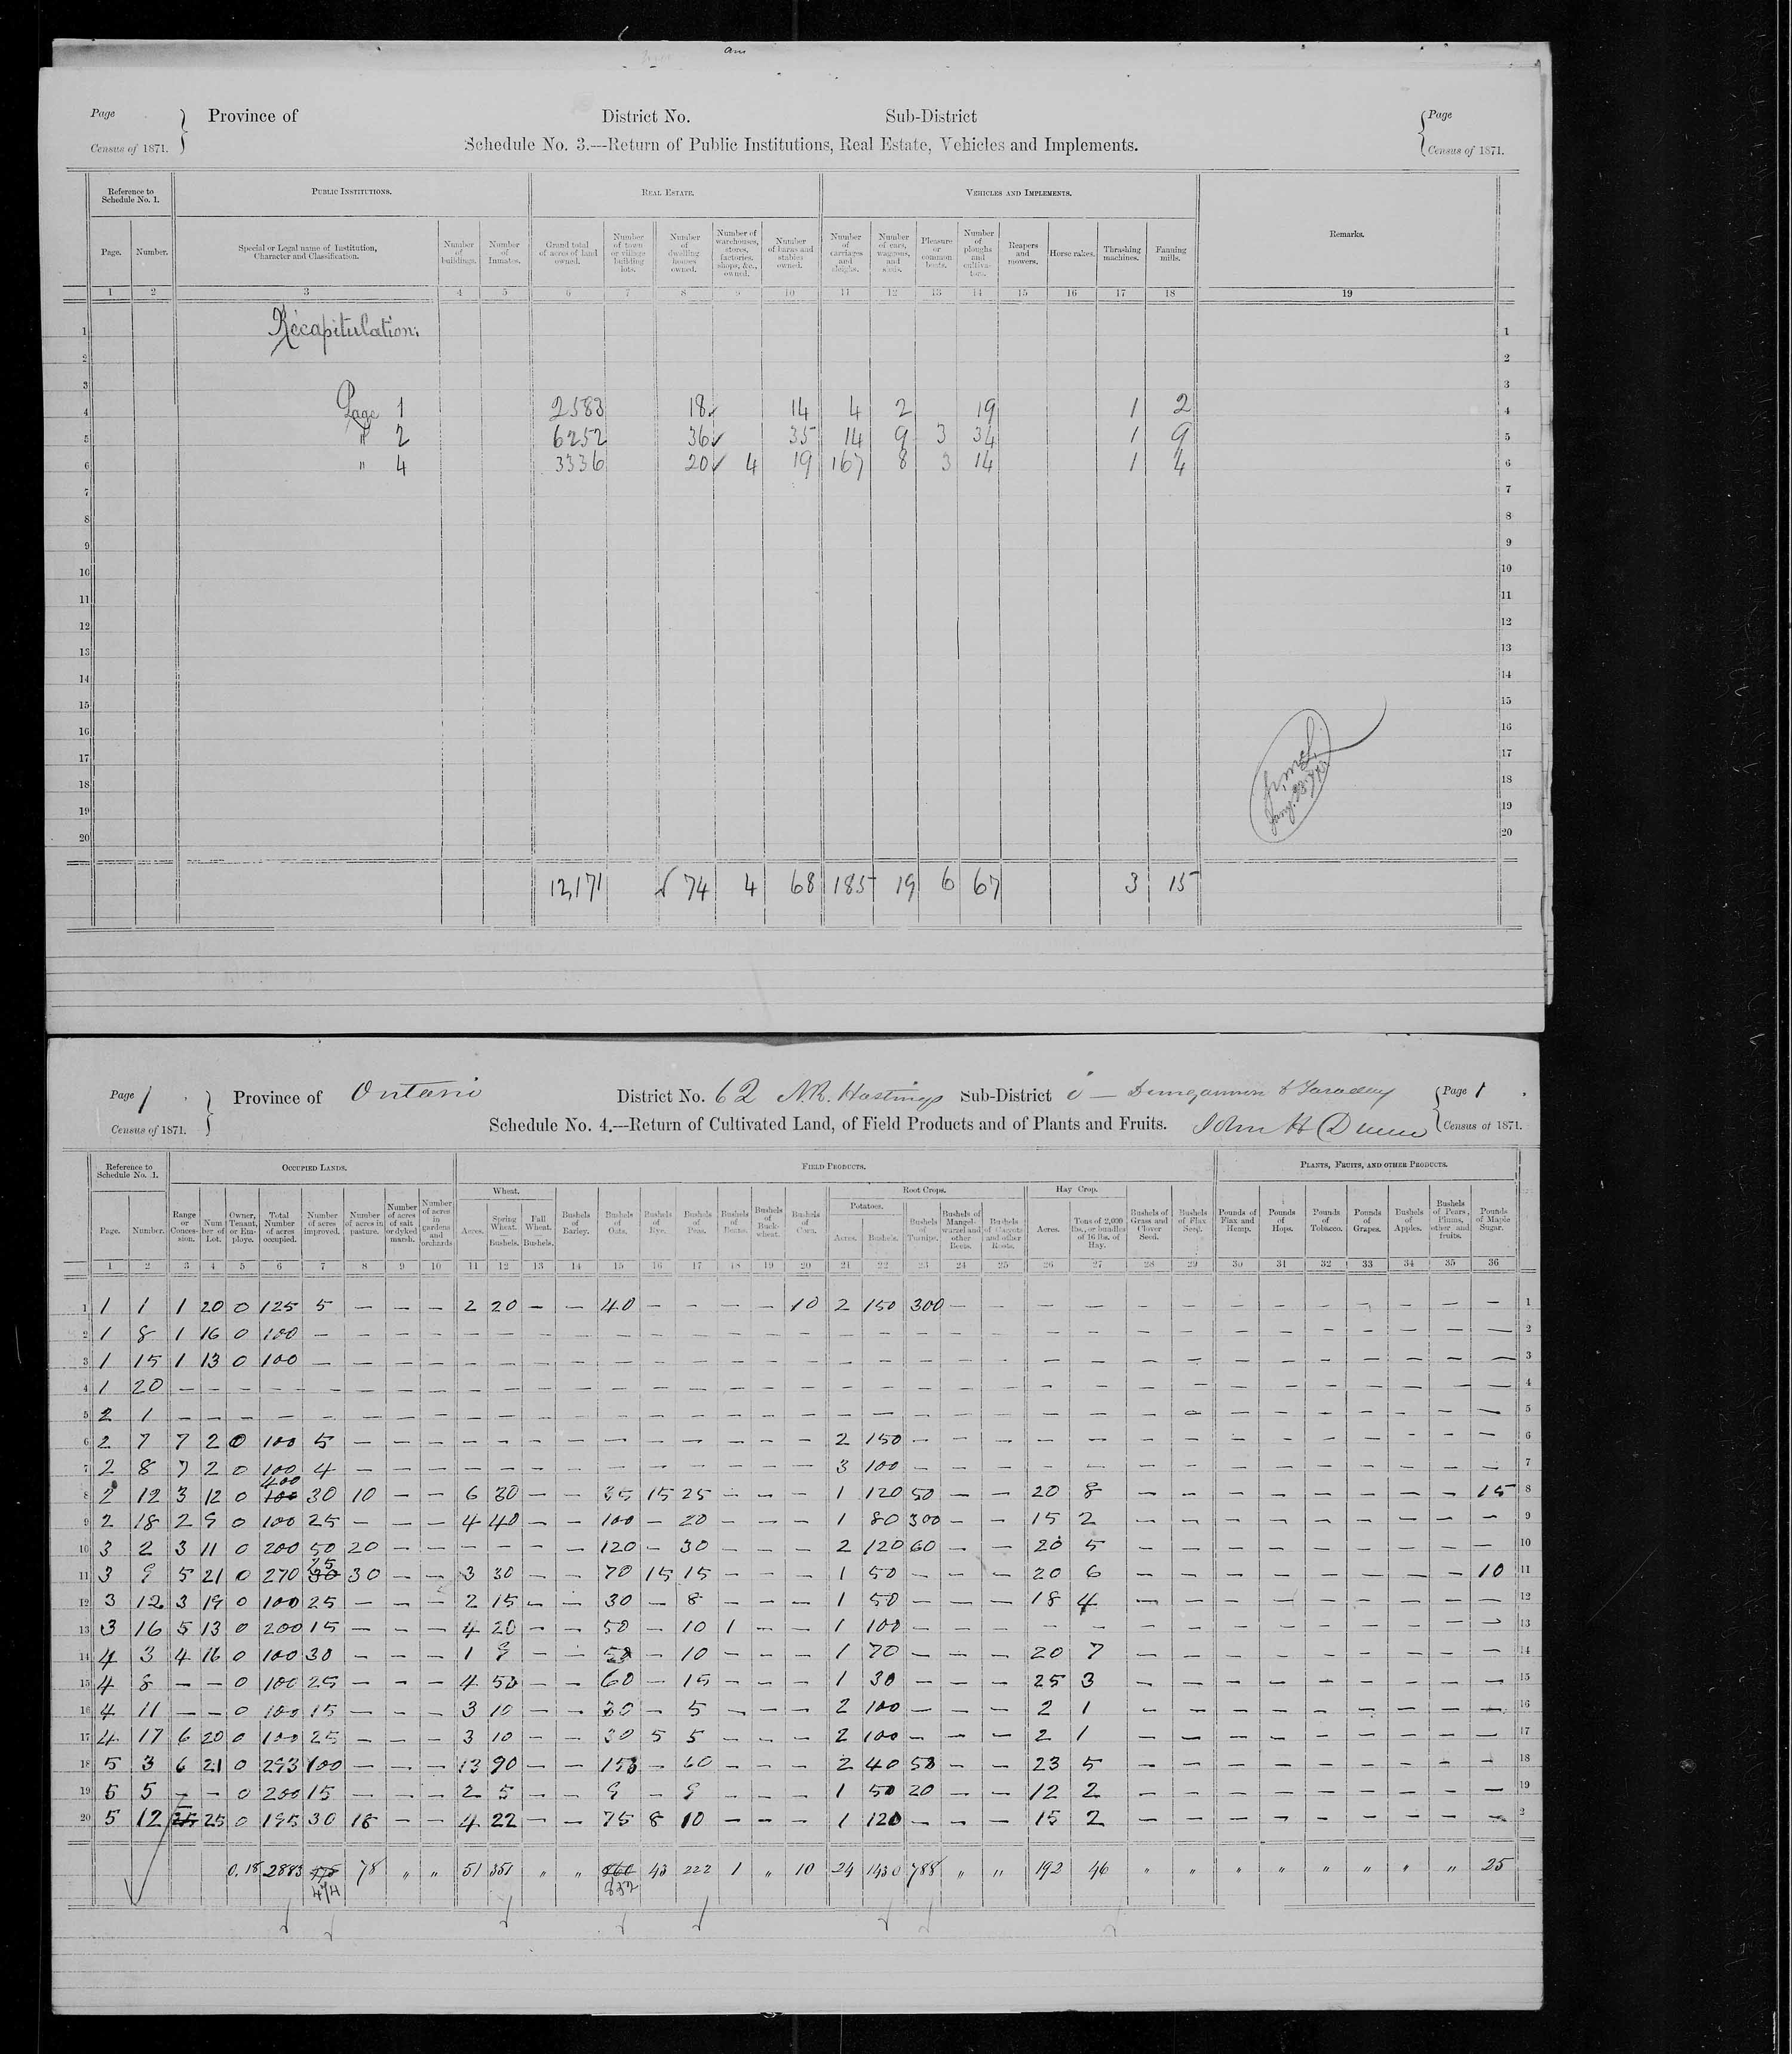 Title: Census of Canada, 1871 - Mikan Number: 142105 - Microform: c-9995